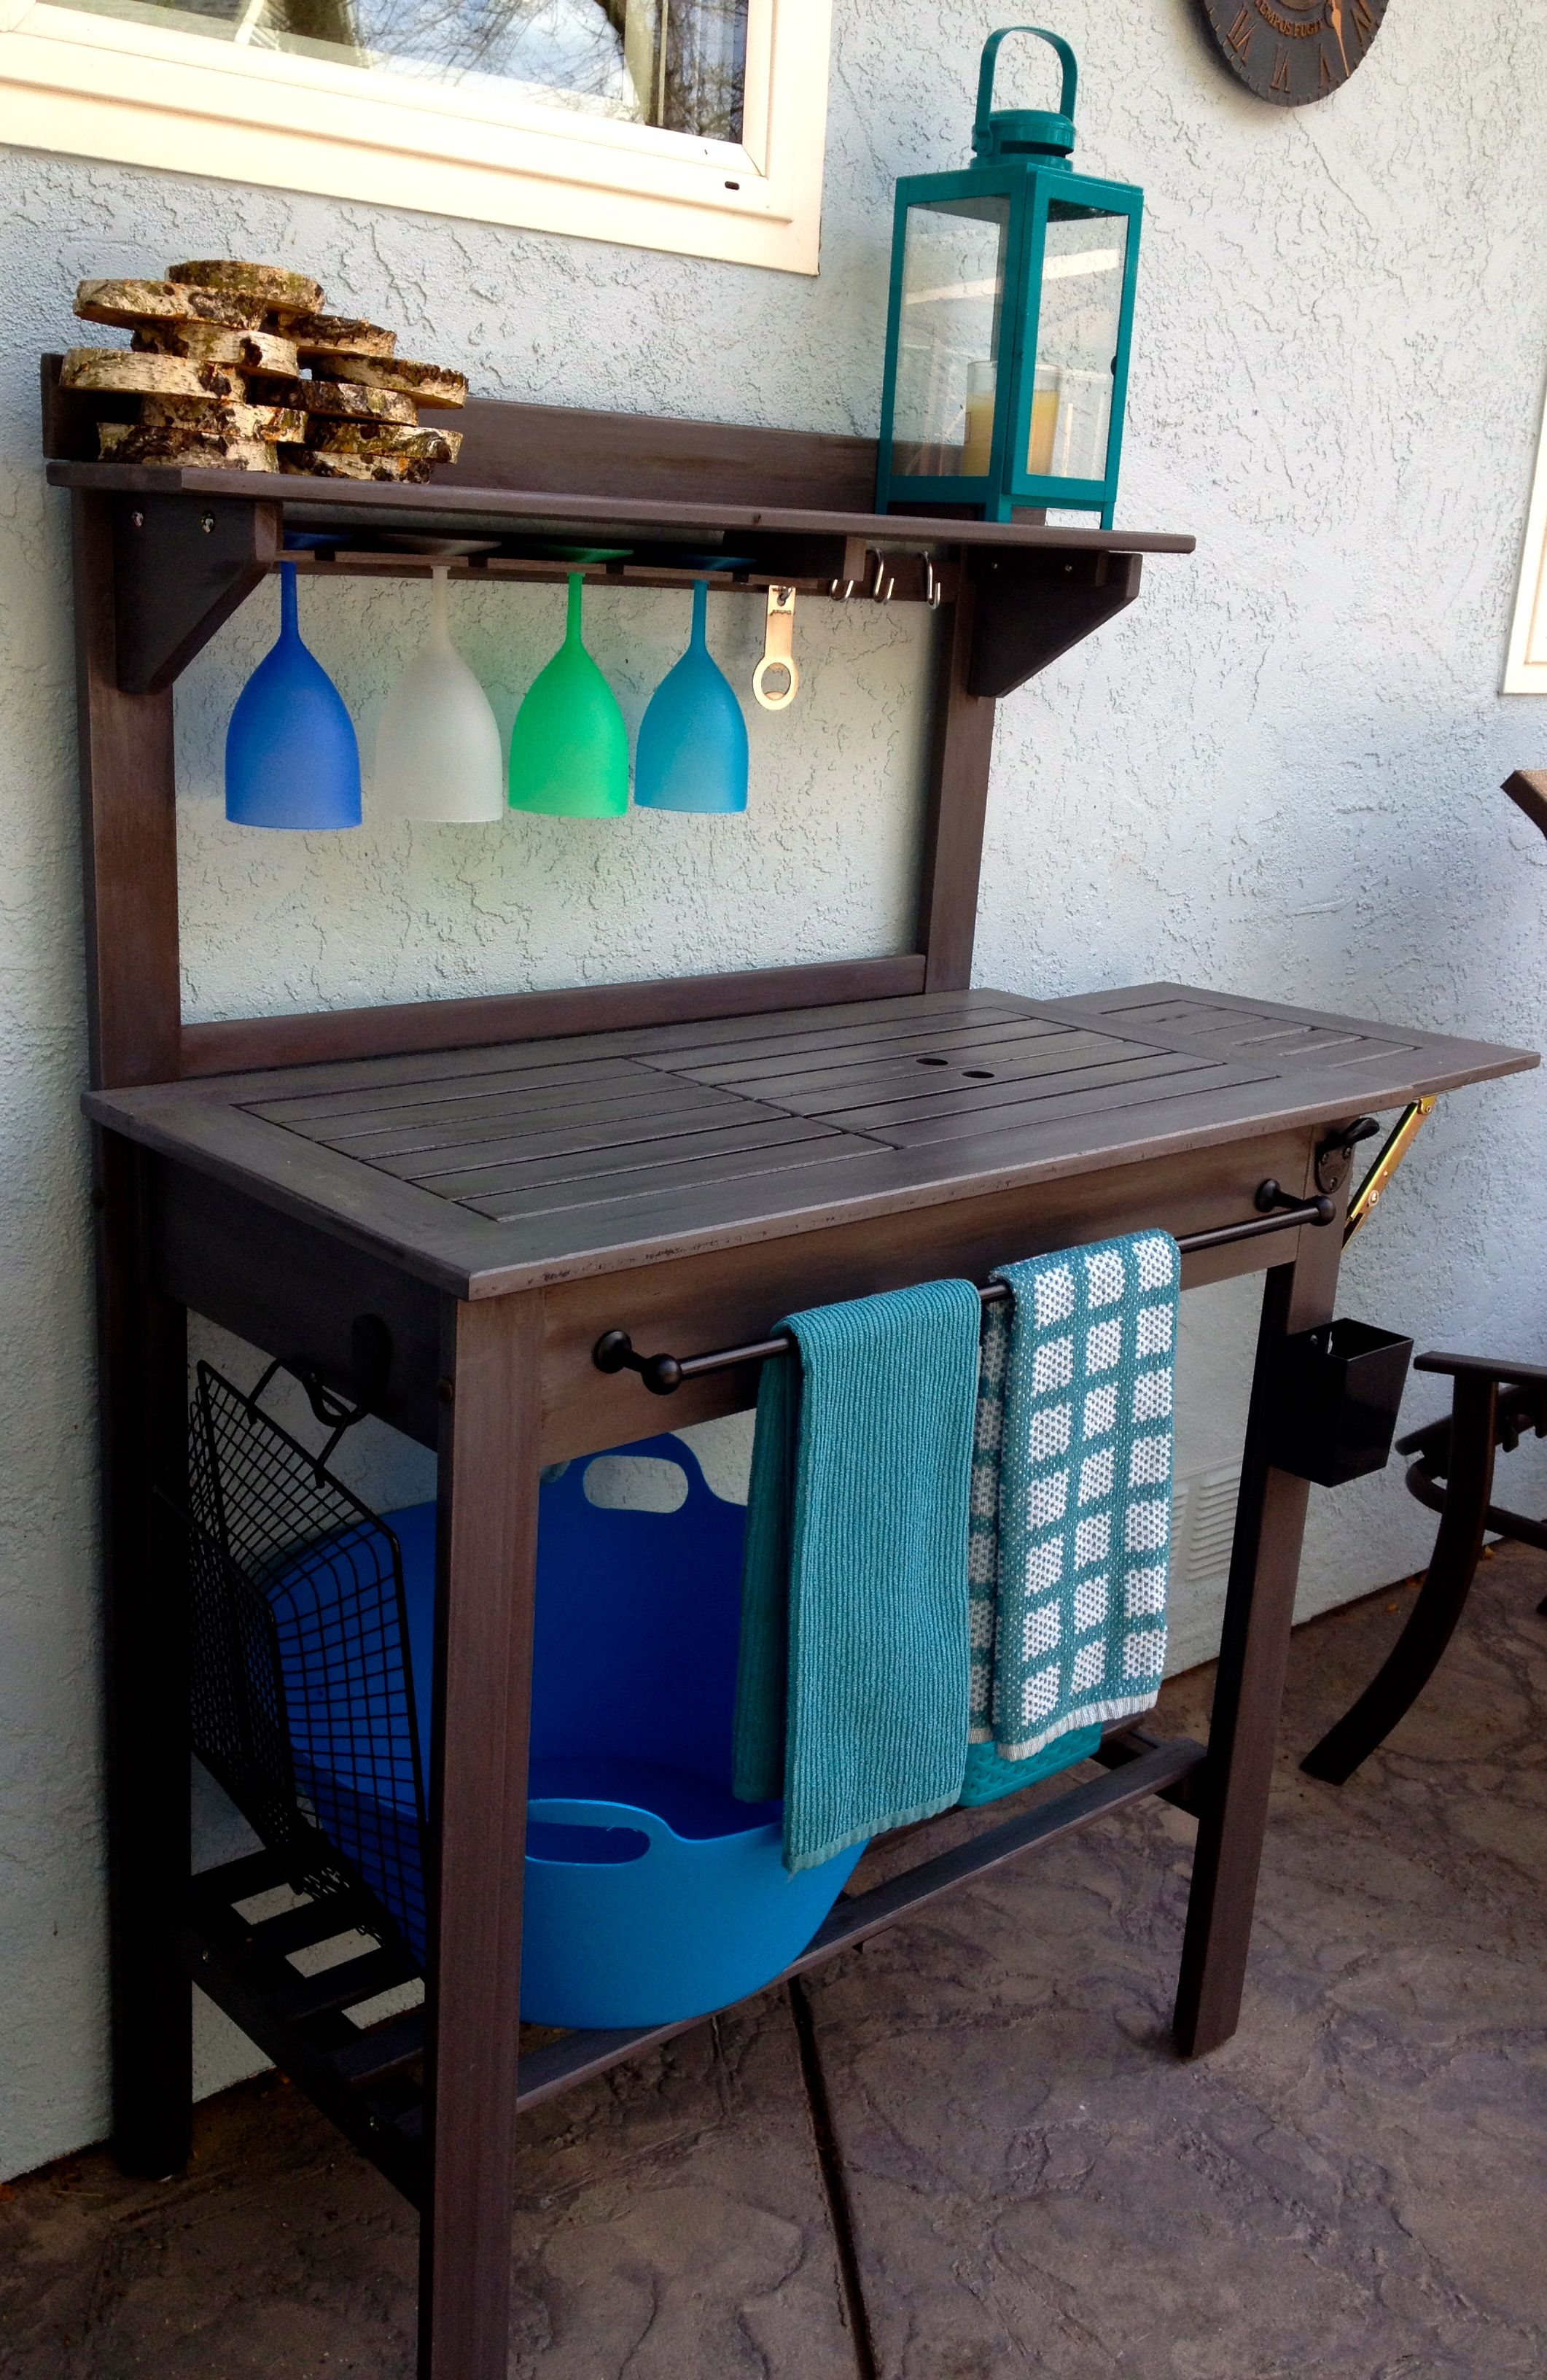 Beau Bought A Potting Bench From Cost Plus World Market... Added Grey Stain,  Towel Bar, Slots For Plastic Wine Glasses, Bottle Opener And Cap Catcher,  ...